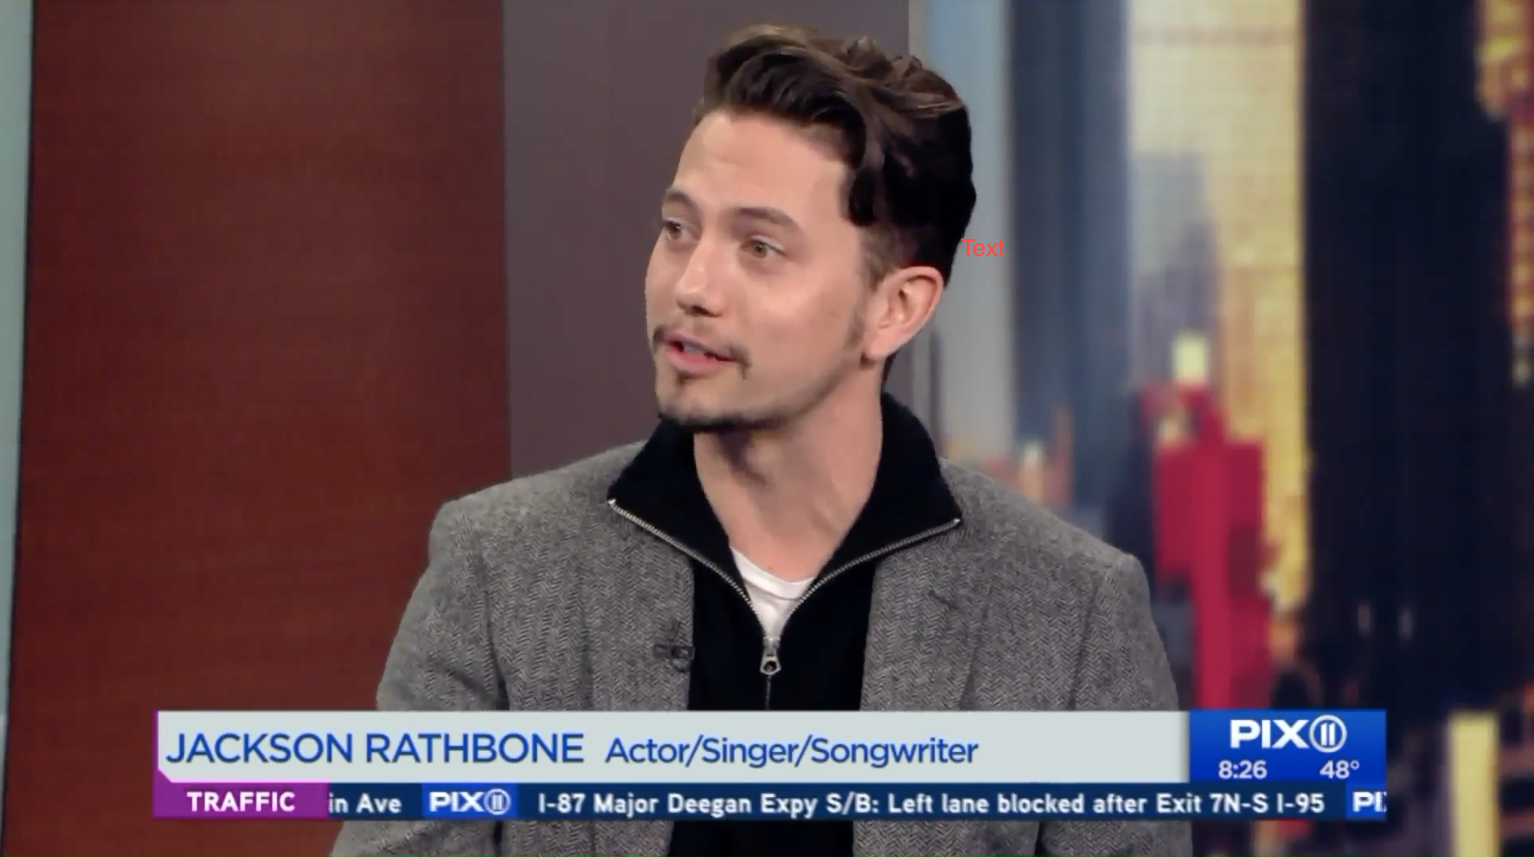 Life after 'Twilight': Oji sits down with star Jackson Rathbone -